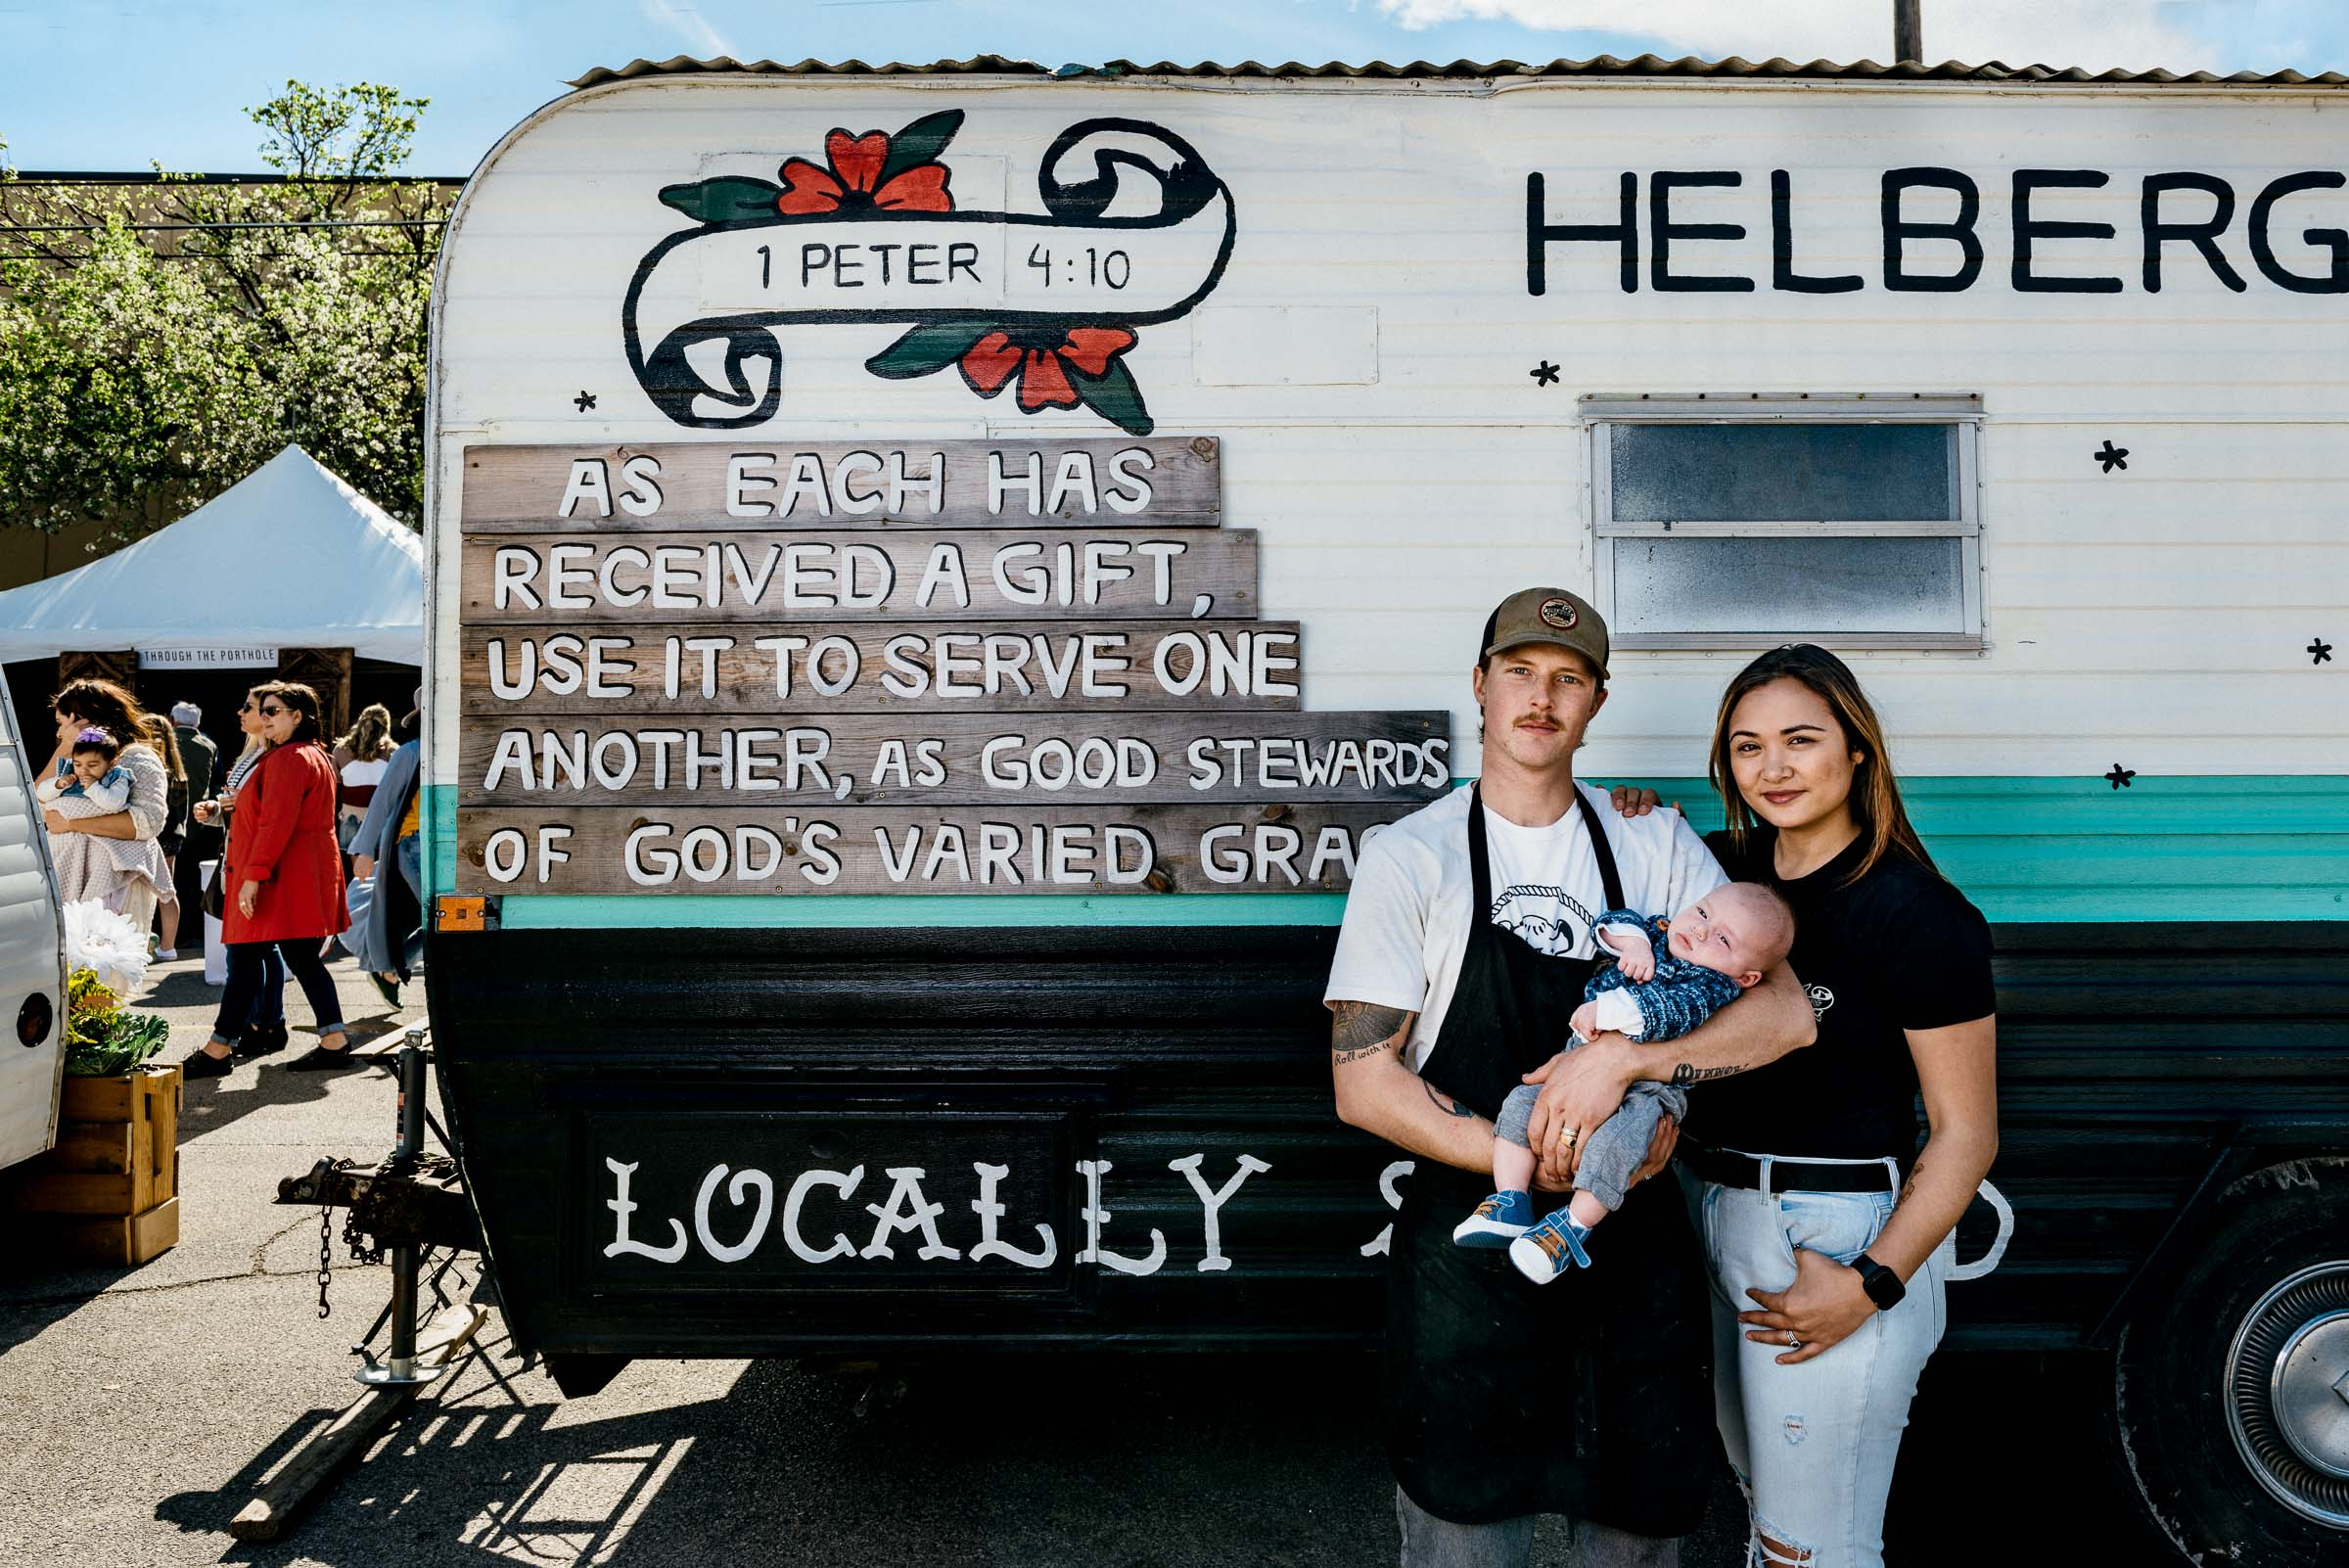 Phillip-and-Evette-Helberg-with newborn baby in front of their food truck -BBQ-Waco-Texas